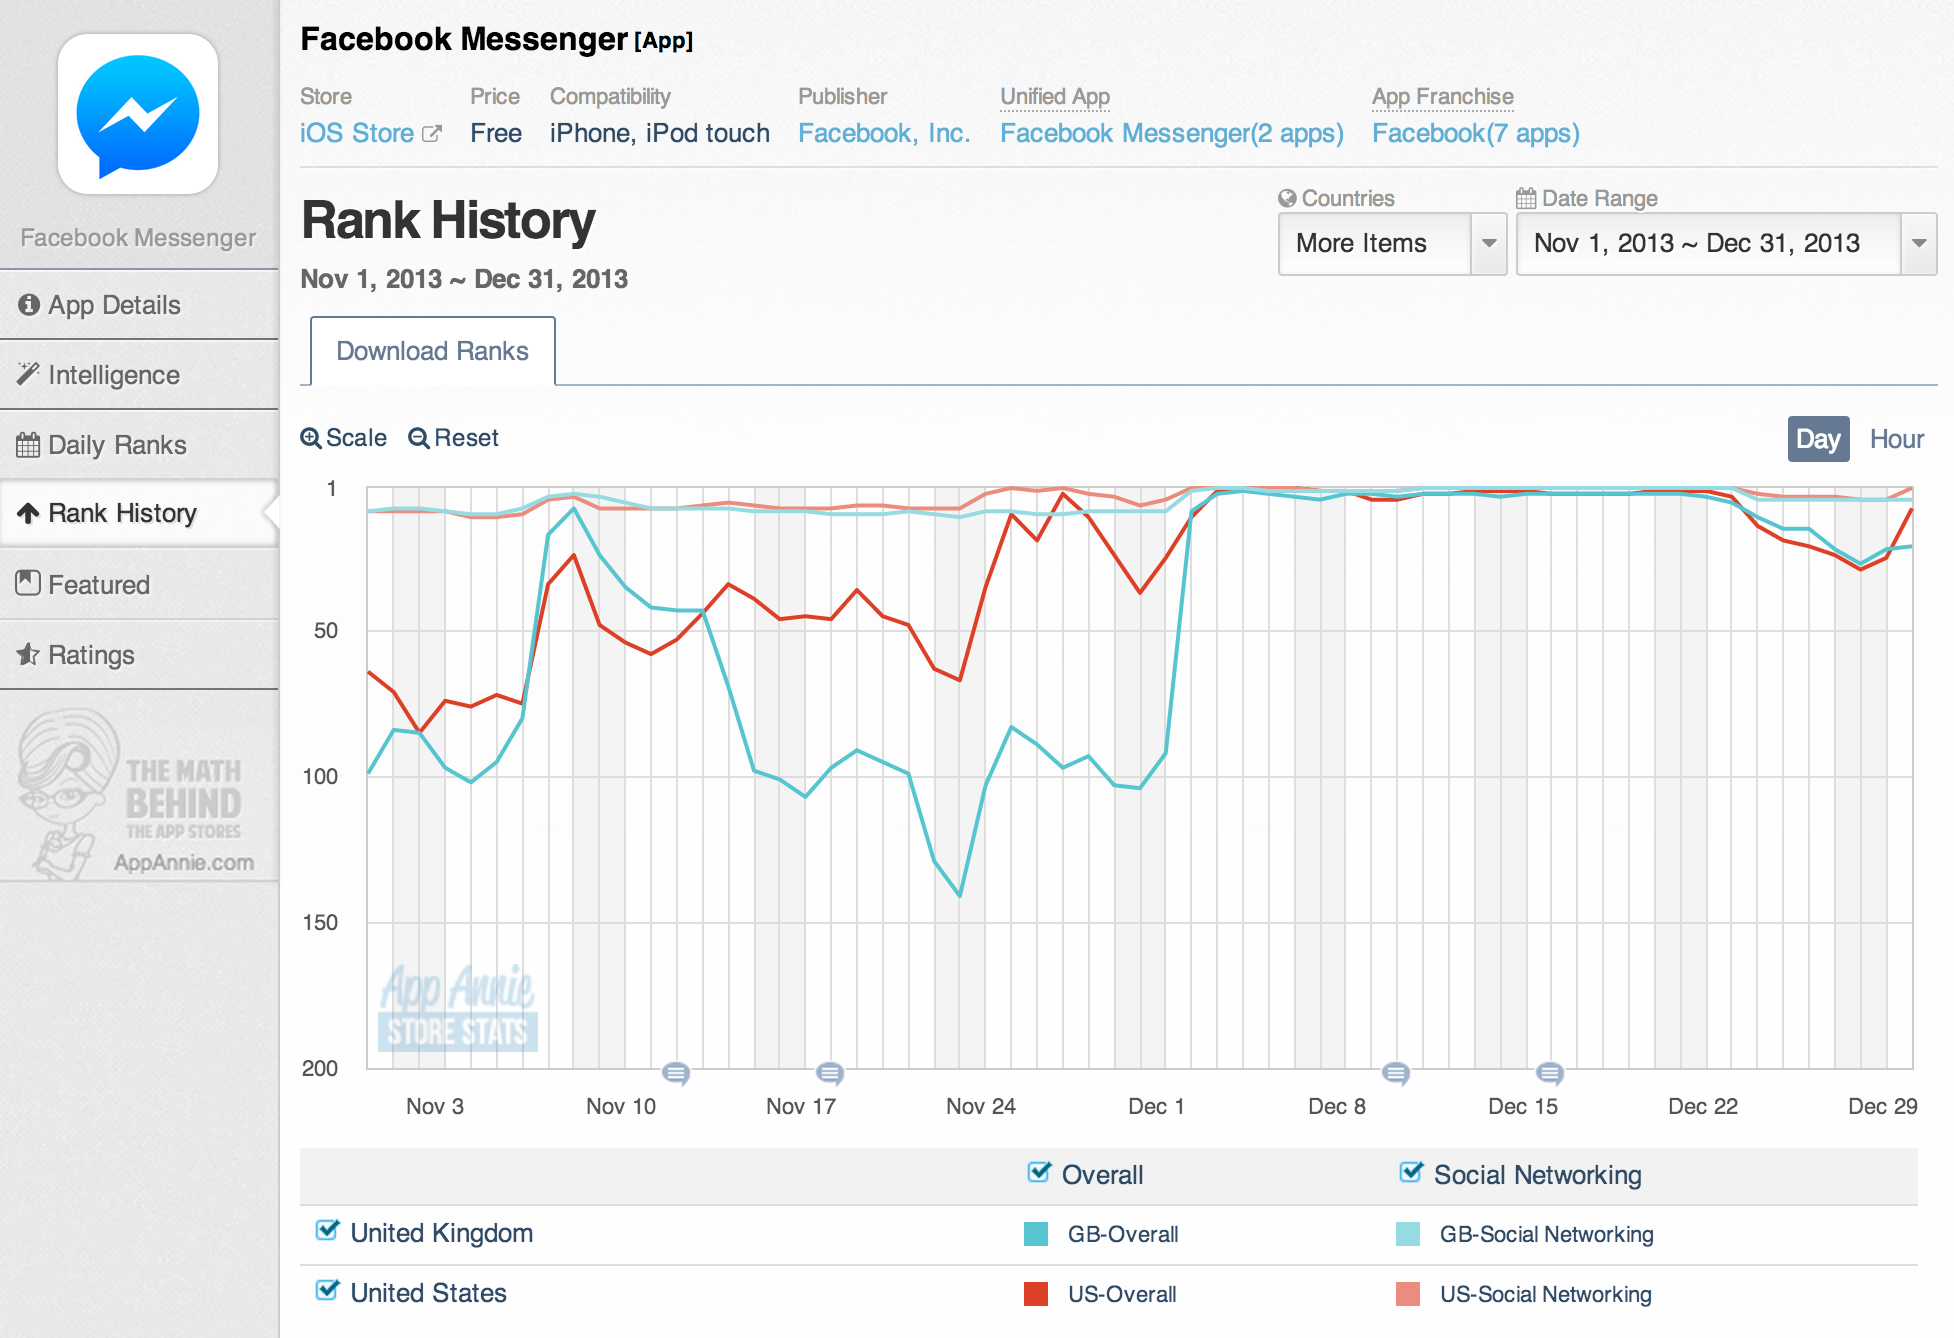 07 - Facebook Messenger Chart